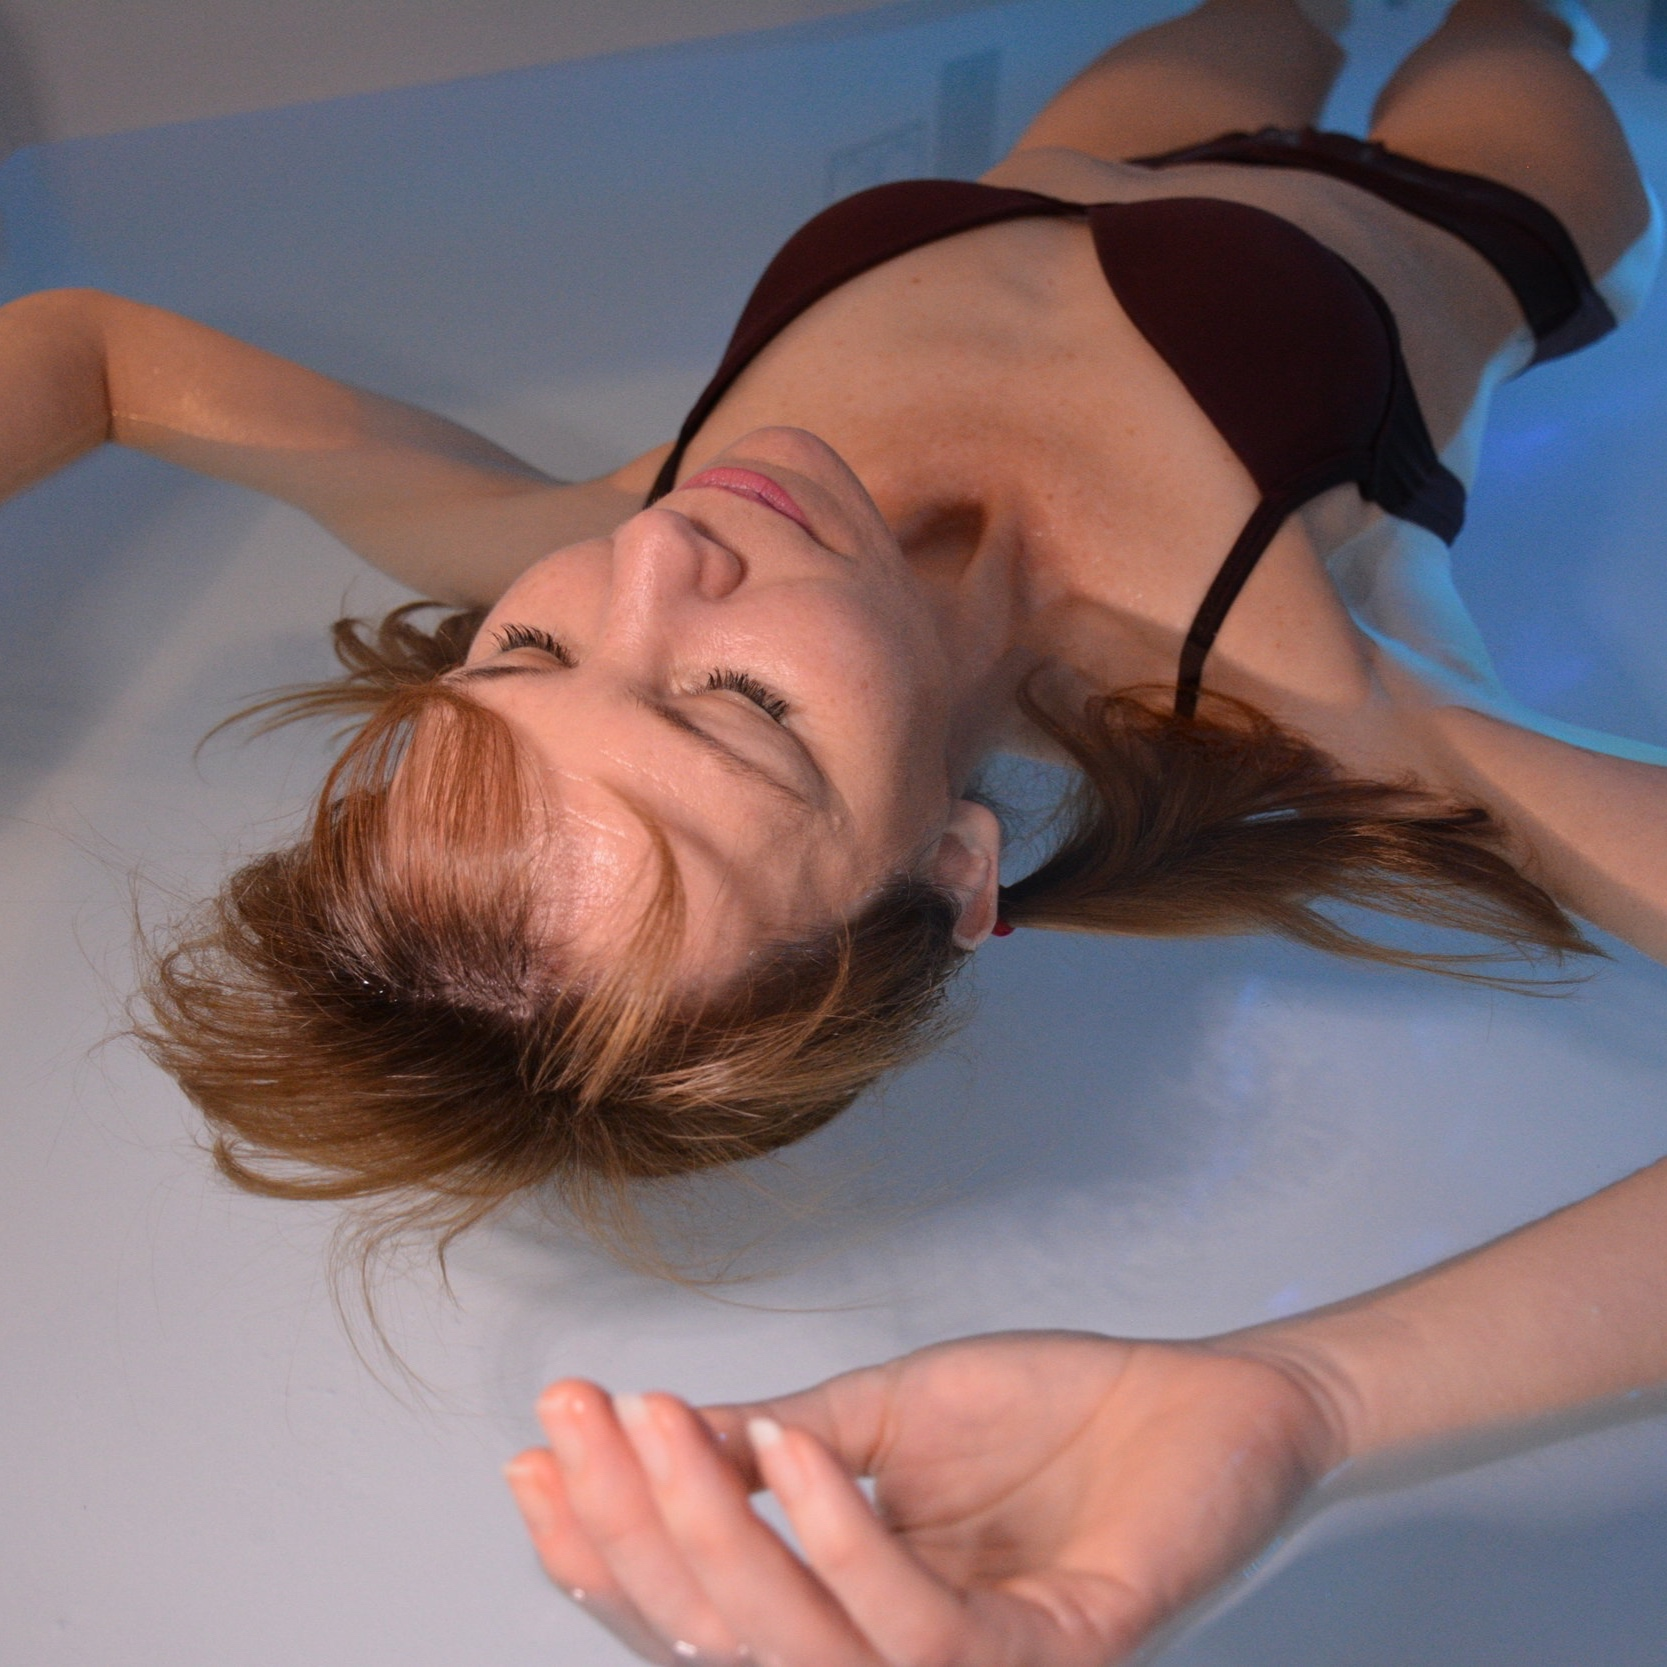 """Floatation Therapy - """"Floating"""" or """"Float Therapy"""", as referred to by some, is the activity involving either an enclosed private room or pod filled with approximately 10-12 inches of warm (94'F) water and 1100 lbs of epsom salt and magnesium solution. The high buoyancy levels achieved allow for an apparently gravity-free environment as you effortlessly drift away into complete and total renewal of the mind, body and spirit. Formally recognized as sensory deprivation, floatation therapy more precisely involves diminishing external stimuli typically found intrusive in one's life and ultimately strengthening self-awareness, supporting mindfulness practices and enhancing internal stimuli. Floating is an exclusive practice with unique physical, mental and spiritual gains that network to generate long lasting results that compound over time with routine and regular use."""